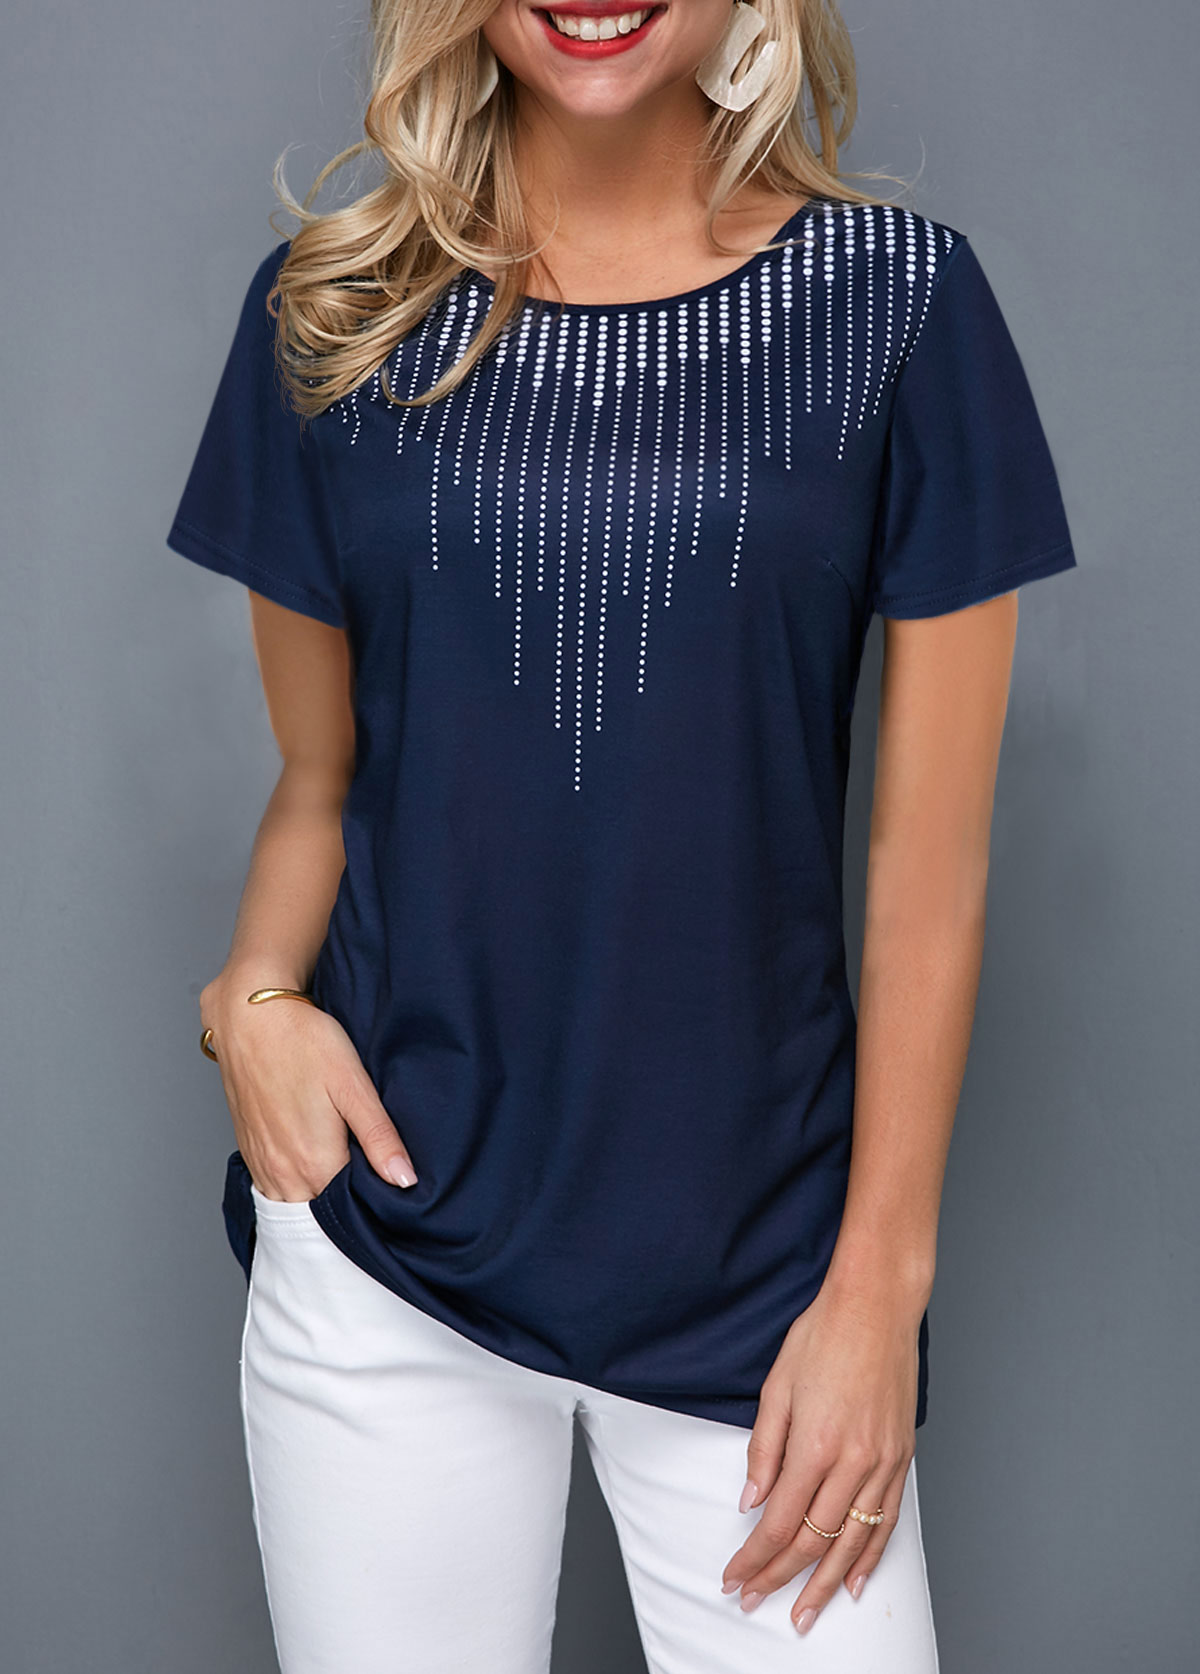 Short Sleeve Printed Navy Blue T Shirt